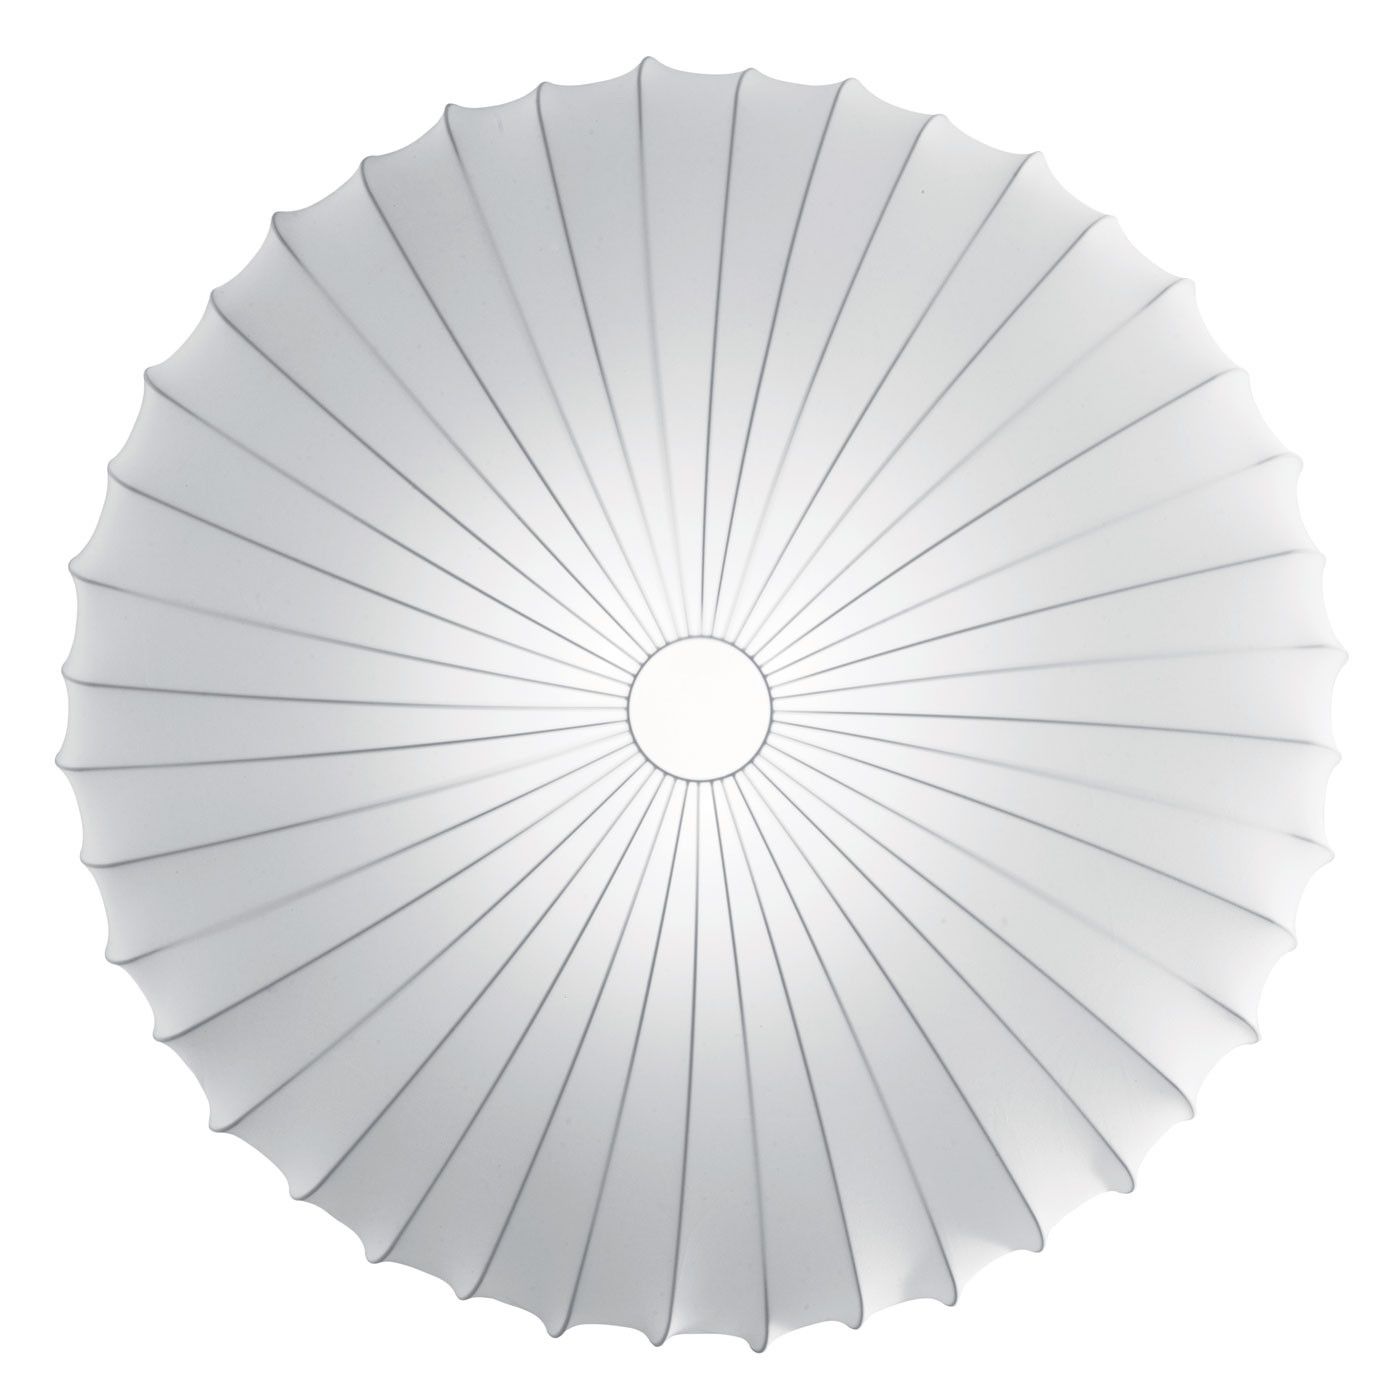 Axo Light Muse 120 Wall and Ceiling Light